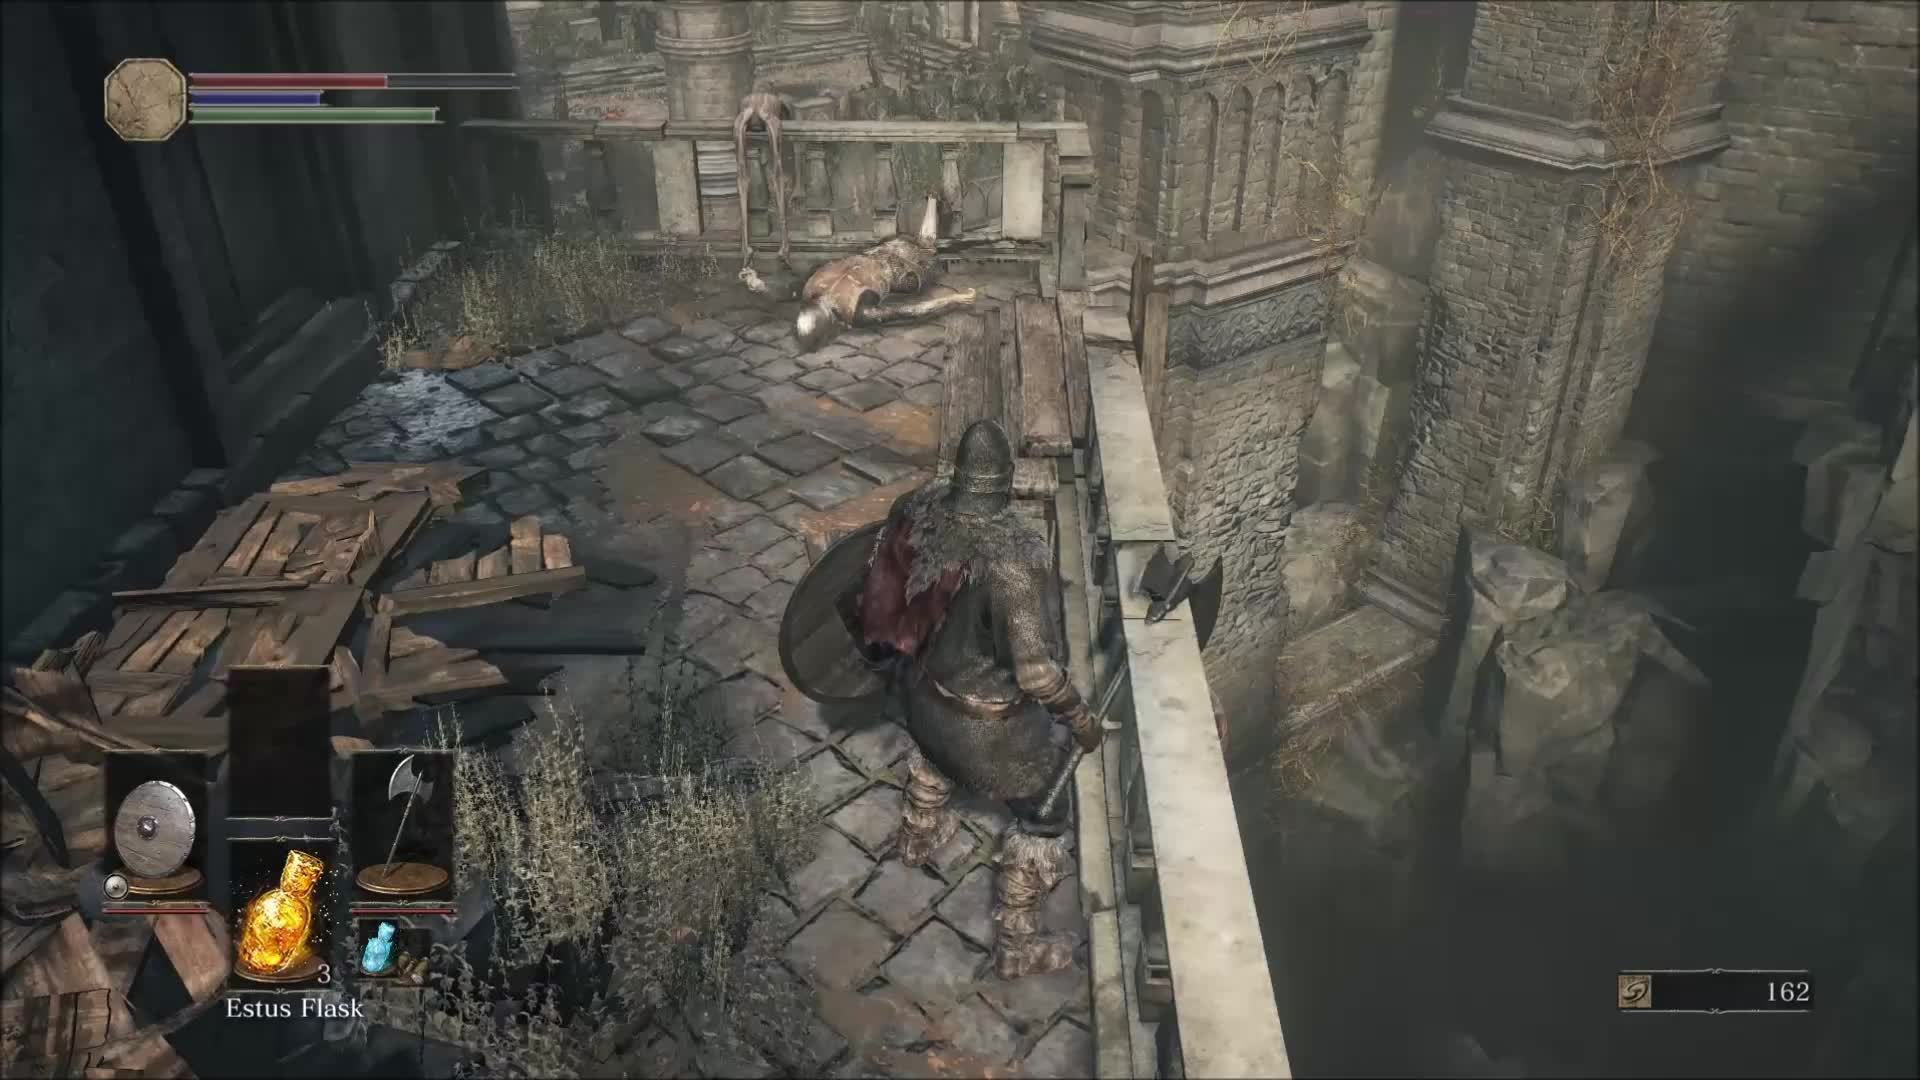 darksouls3, Double suicide GIFs